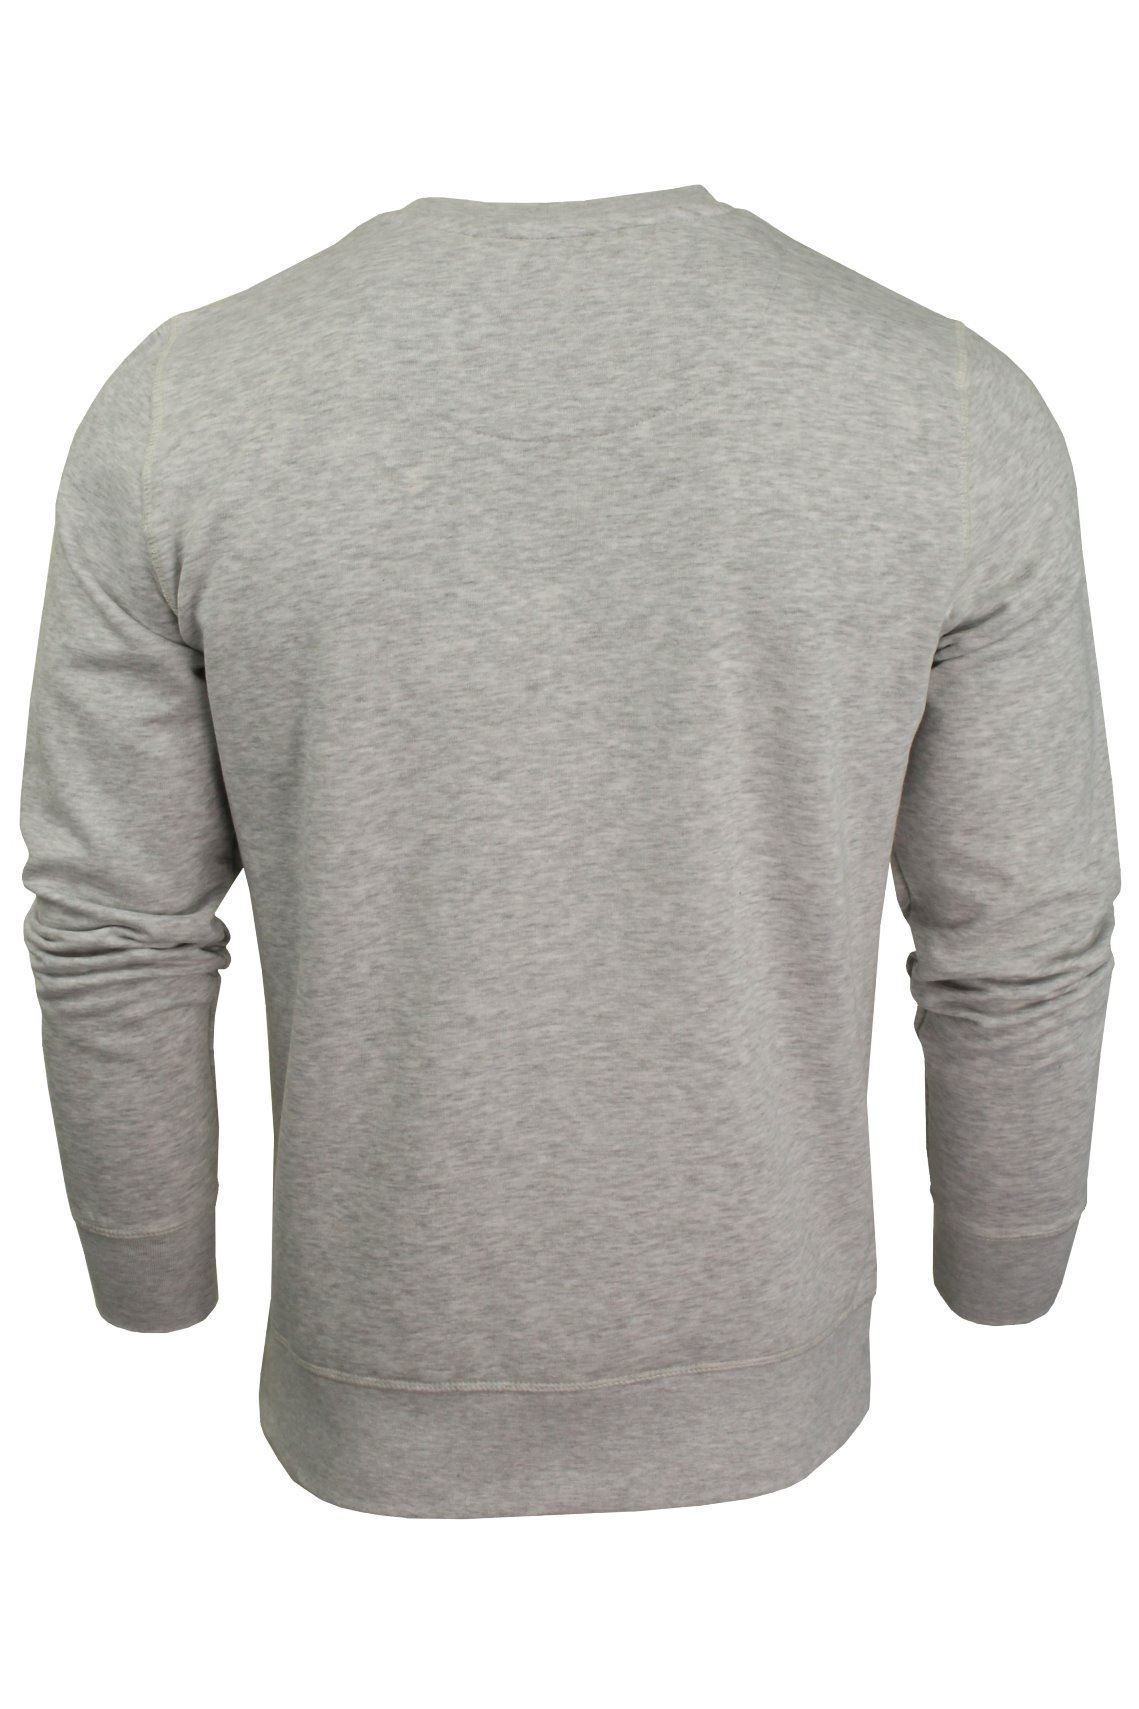 Mens-Sweater-Jumper-Brave-Soul-Jones-Crew-Neck-Sweatshirt thumbnail 17